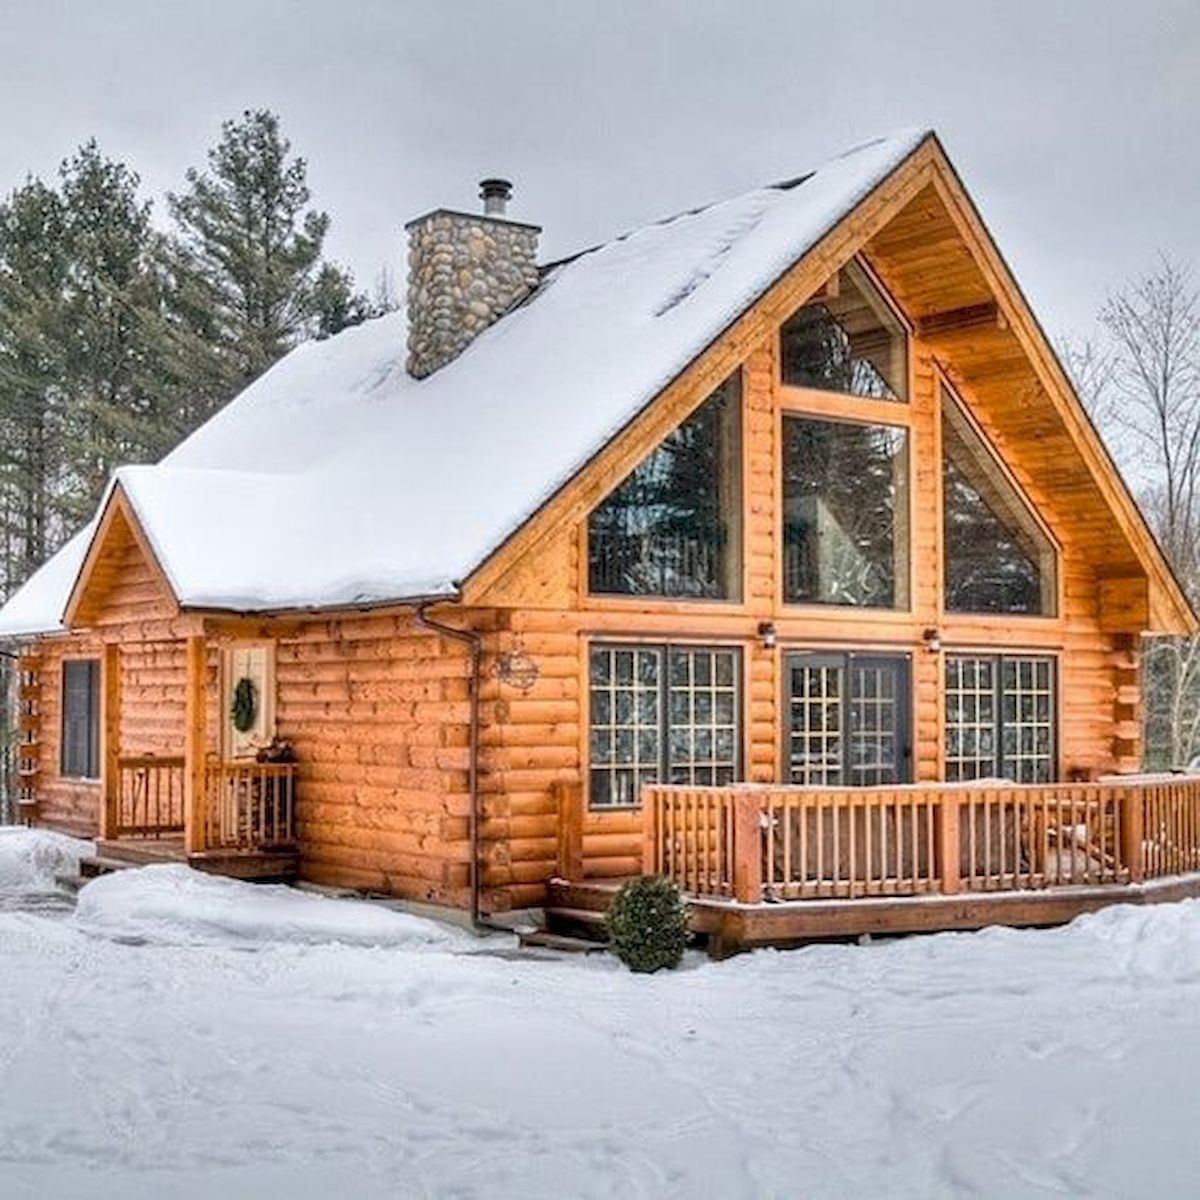 Log Cabin Types The Most Effective Aspects Of Log Cabin Kits And Stars Remarkable Cabin In The Woods Log Home Interiors Log Cabin Homes Log Home Living